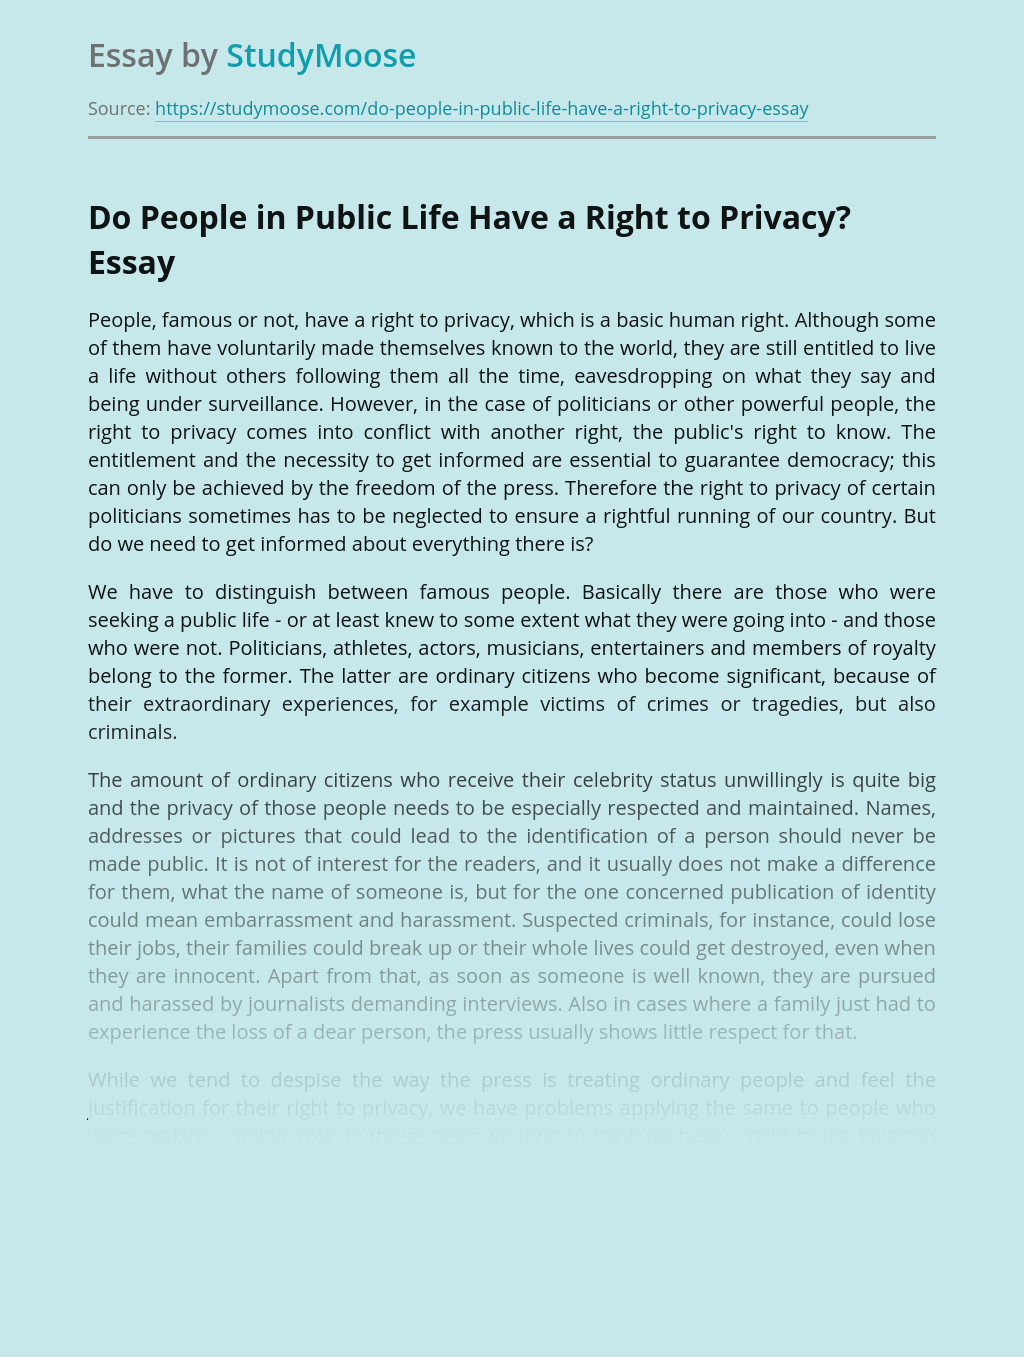 Do People in Public Life Have a Right to Privacy?